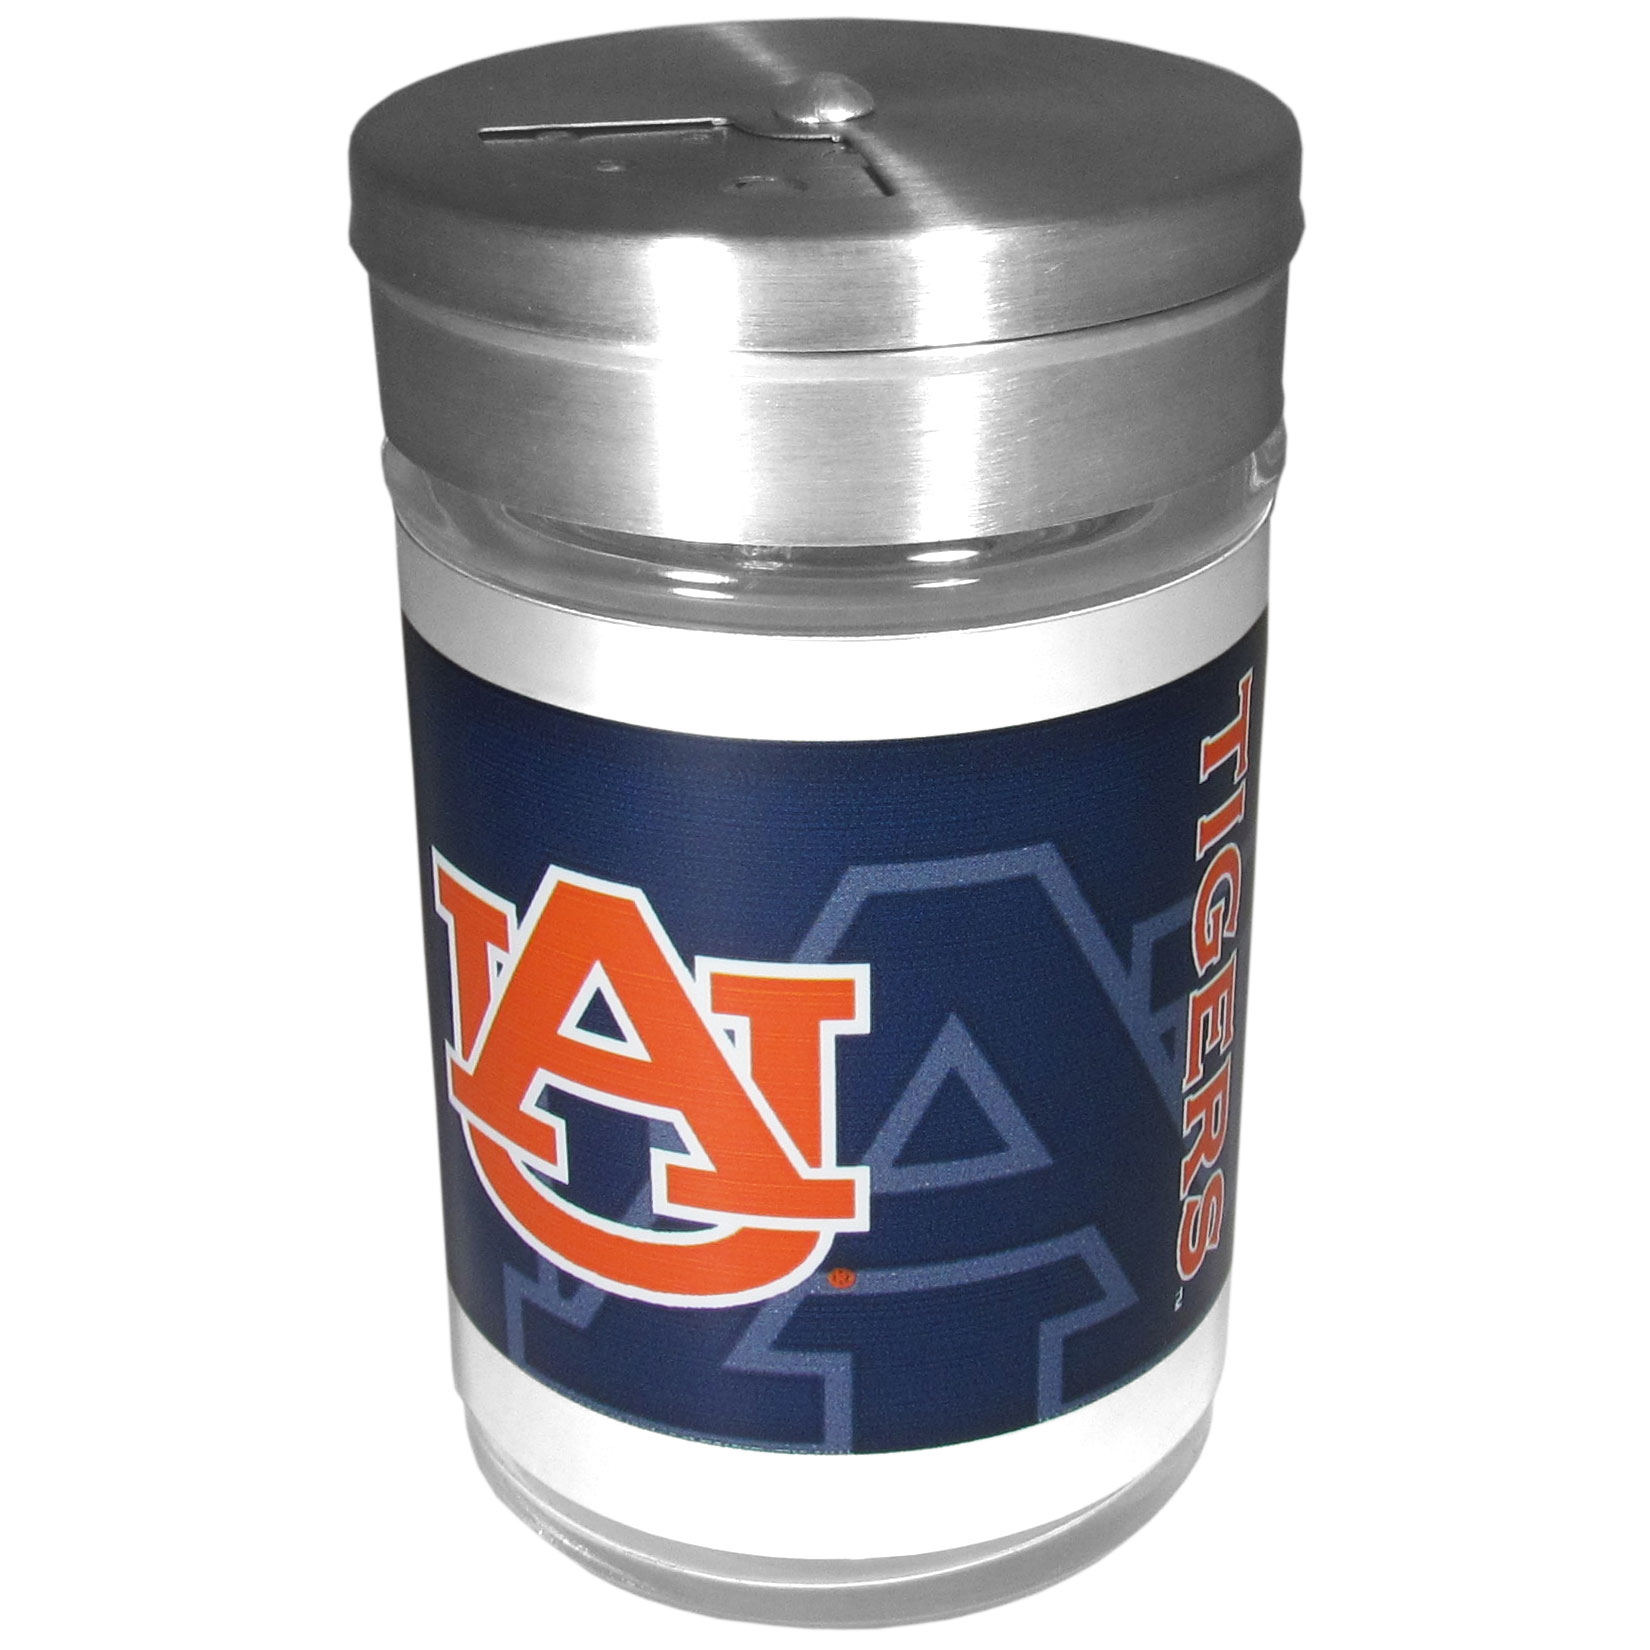 Auburn Tigers Tailgater Season Shakers - Spice it up with our Auburn Tigers tailgater season shakers! This compact shaker is 2 inch tall with a twist top that closes off the holes at the top making it perfect for travel preventing those messy spills. The shaker has wide holes perfect for keeping your pepper seeds or cheese toppings. The bright team graphics will make you the envy of the other fans while you are grilling up your tailgating goodies.